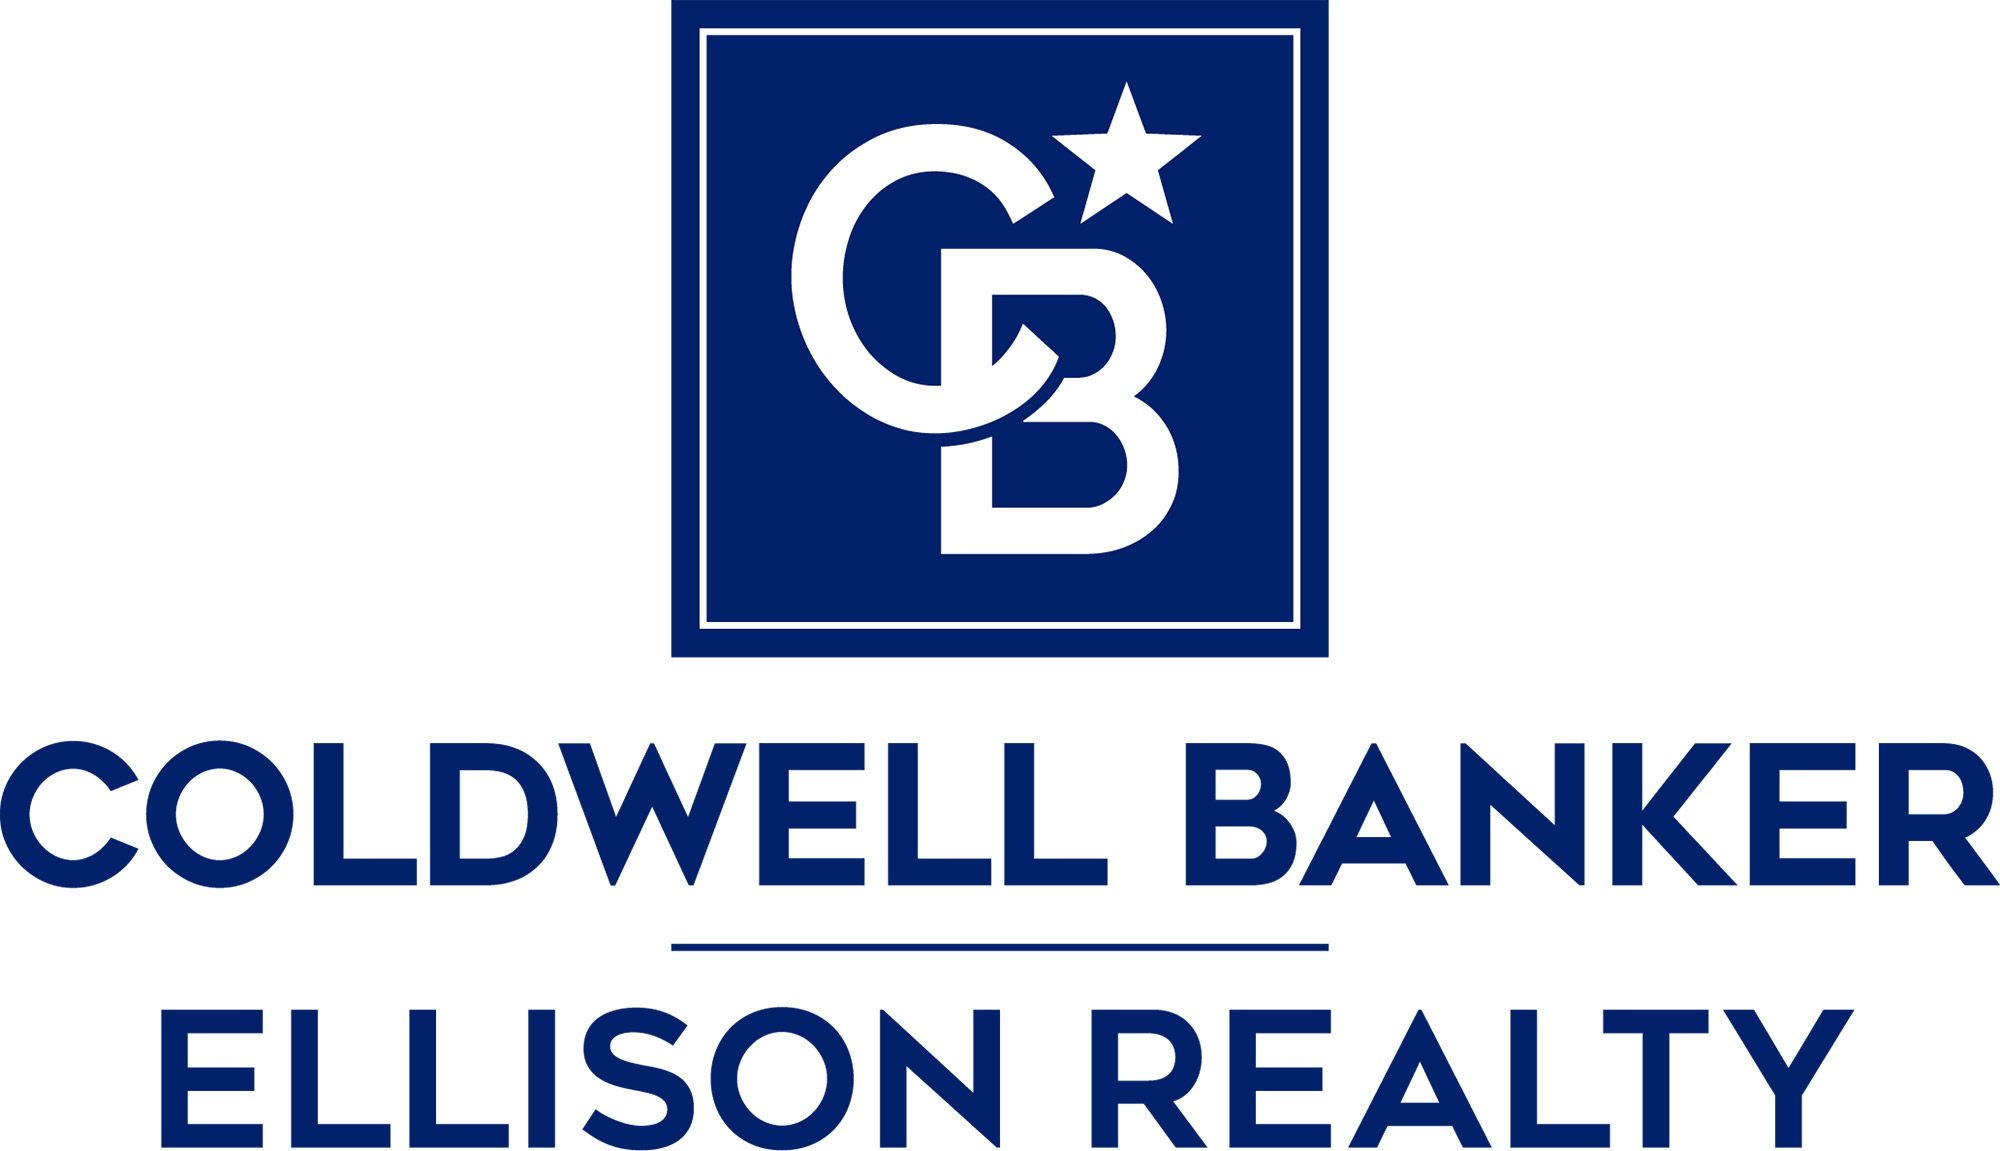 Carol Lahti Smith - Coldwell Banker Ellison Realty Logo